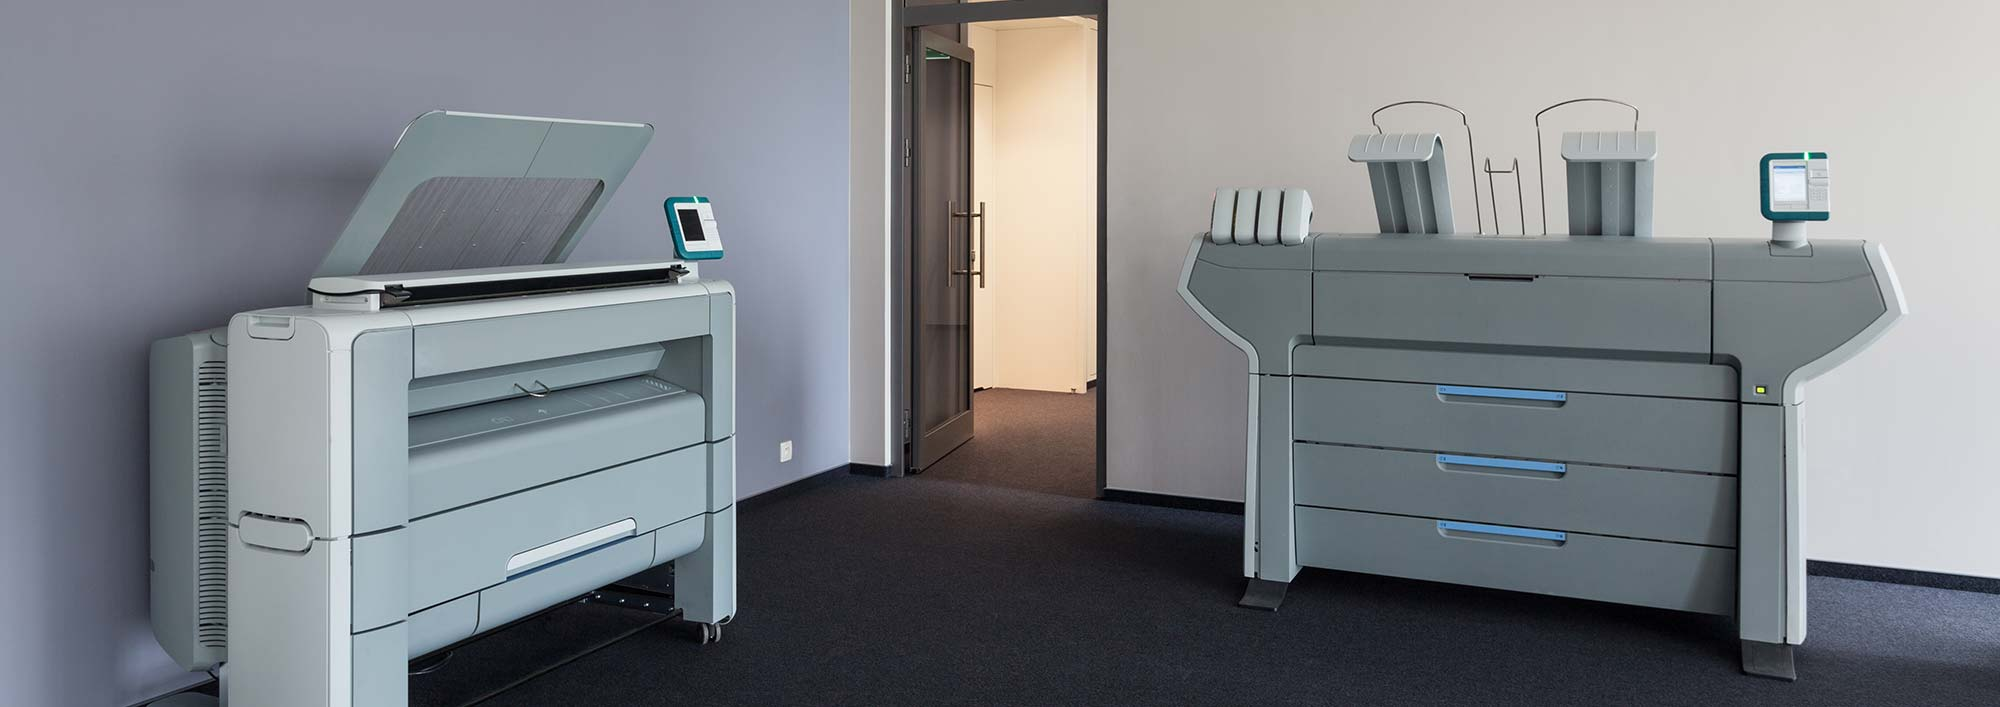 Office with printing equipment